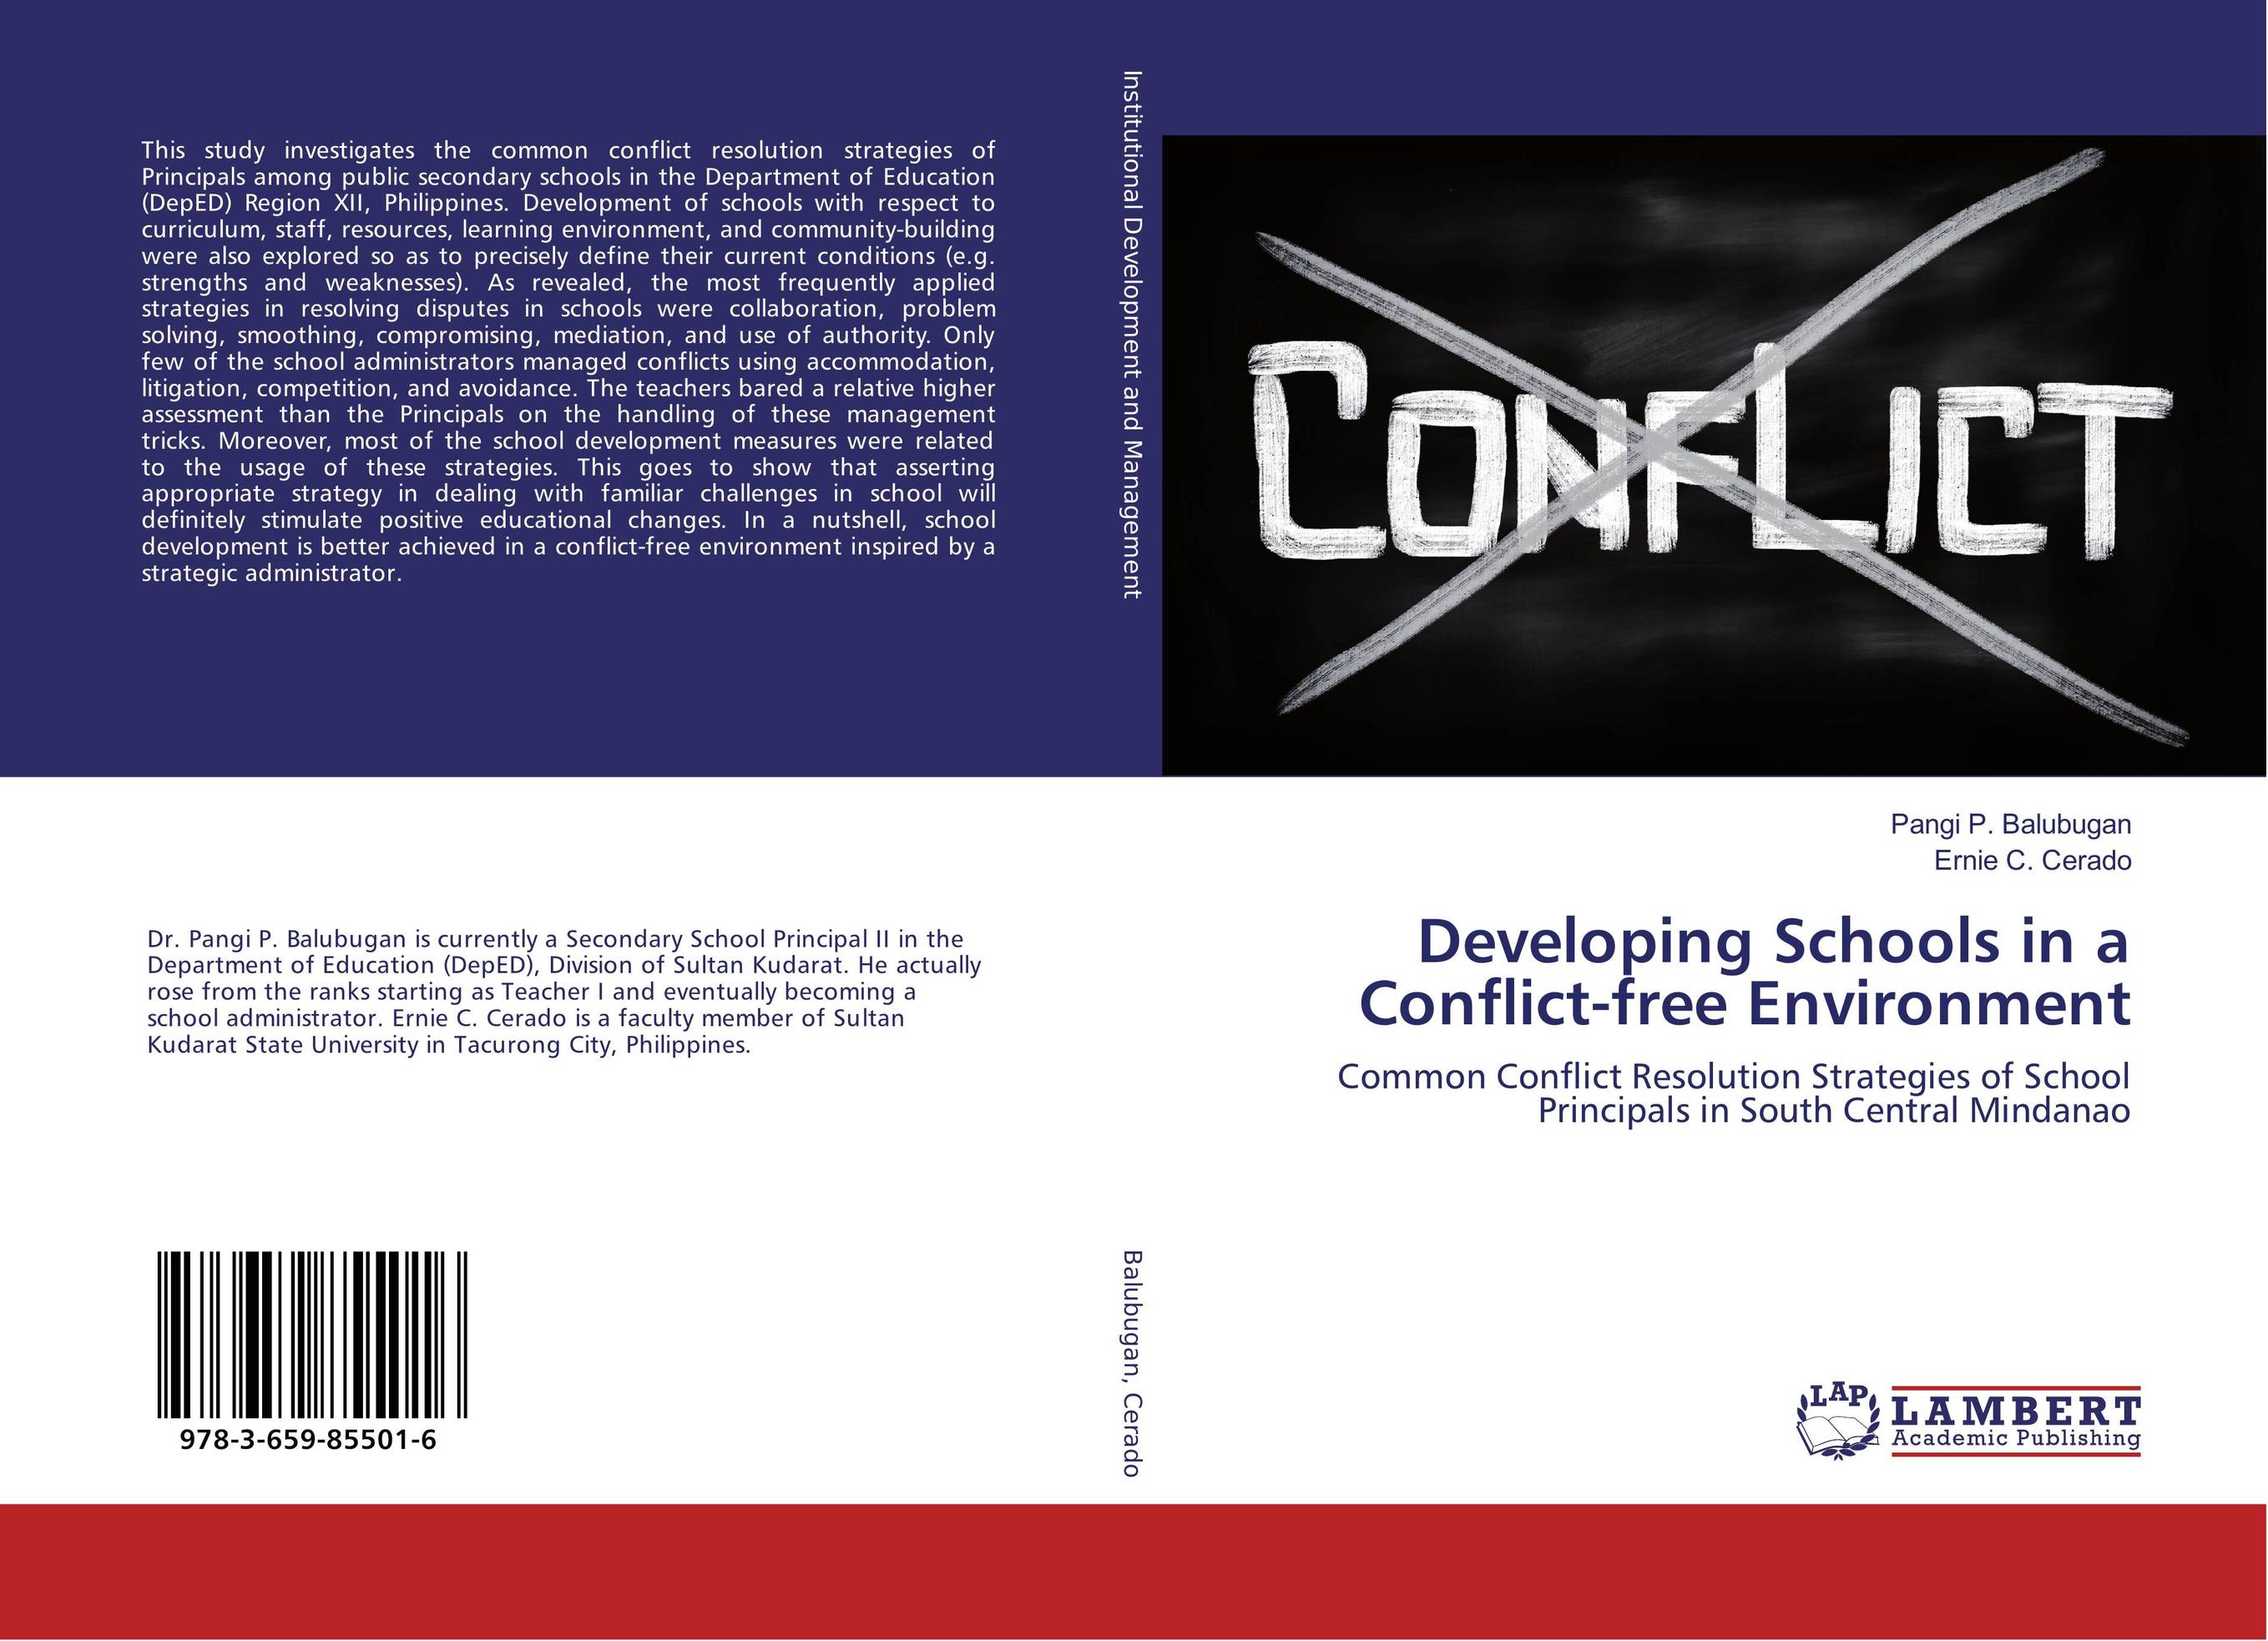 Developing Schools in a Conflict-free Environment female head teachers administrative challenges in schools in kenya